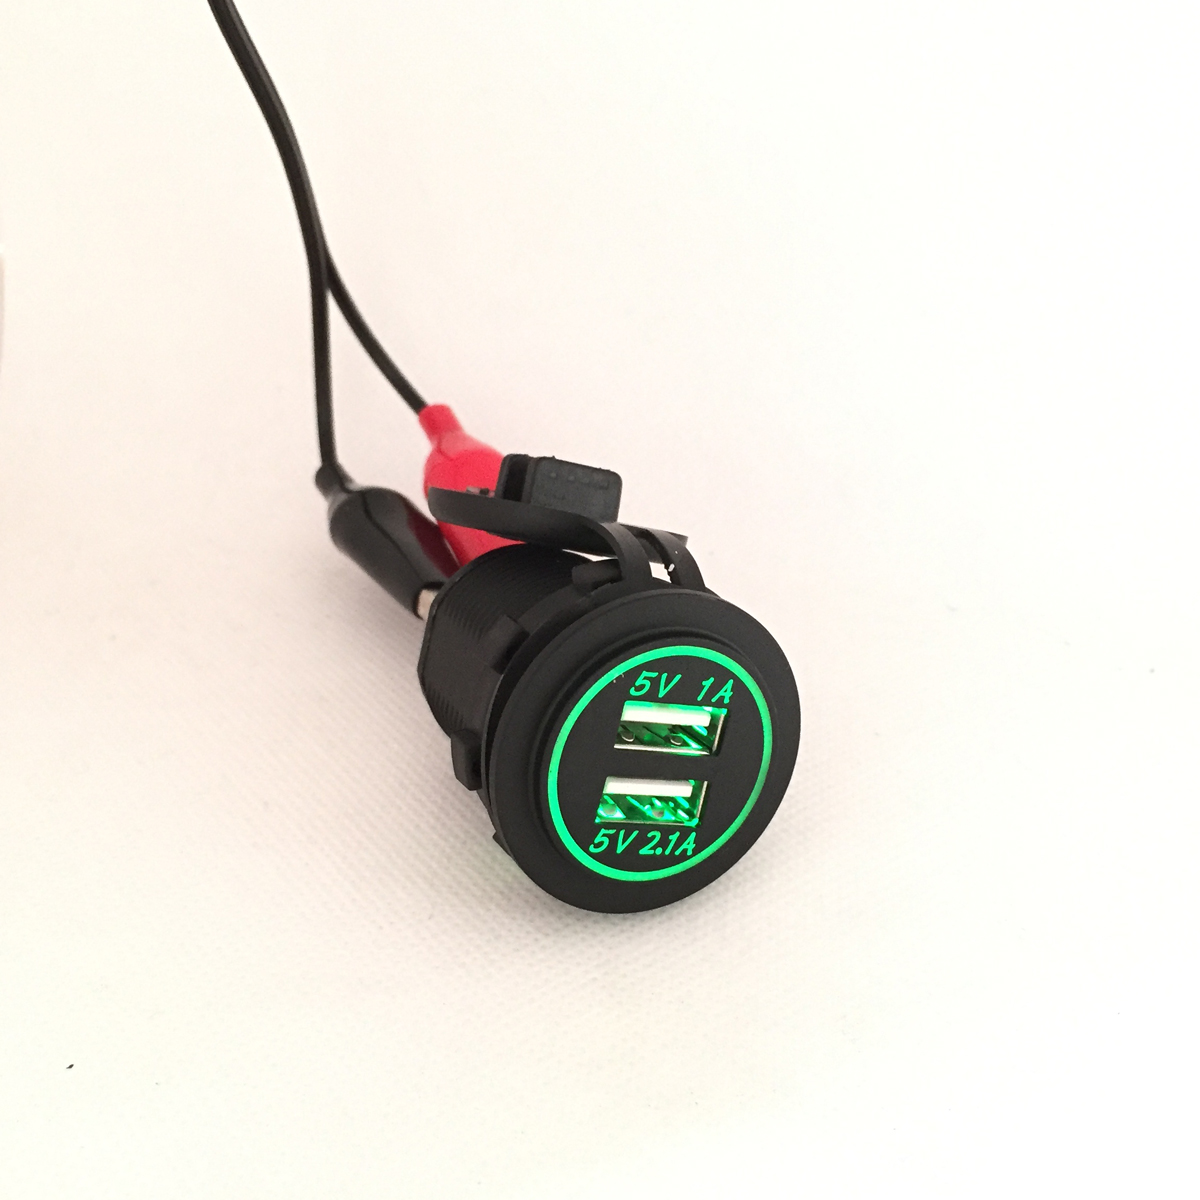 Colored usb car charger - Diy 12v 24v Dual Usb Car Charger Power Outlet 1a 2 1a For Ipad